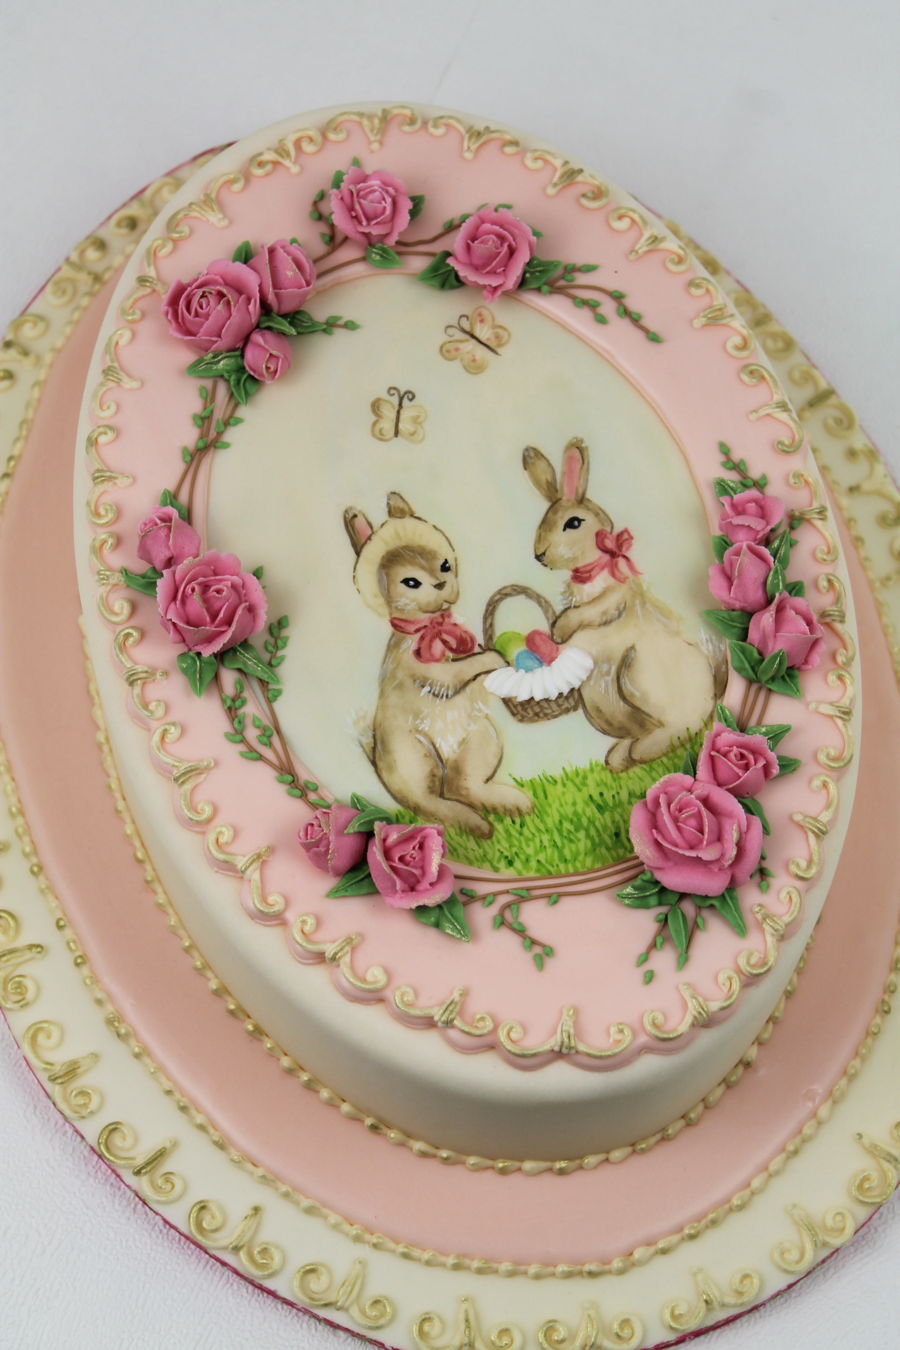 Easter Cake Icing Ideas : French Vintage Easter Cake - CakeCentral.com